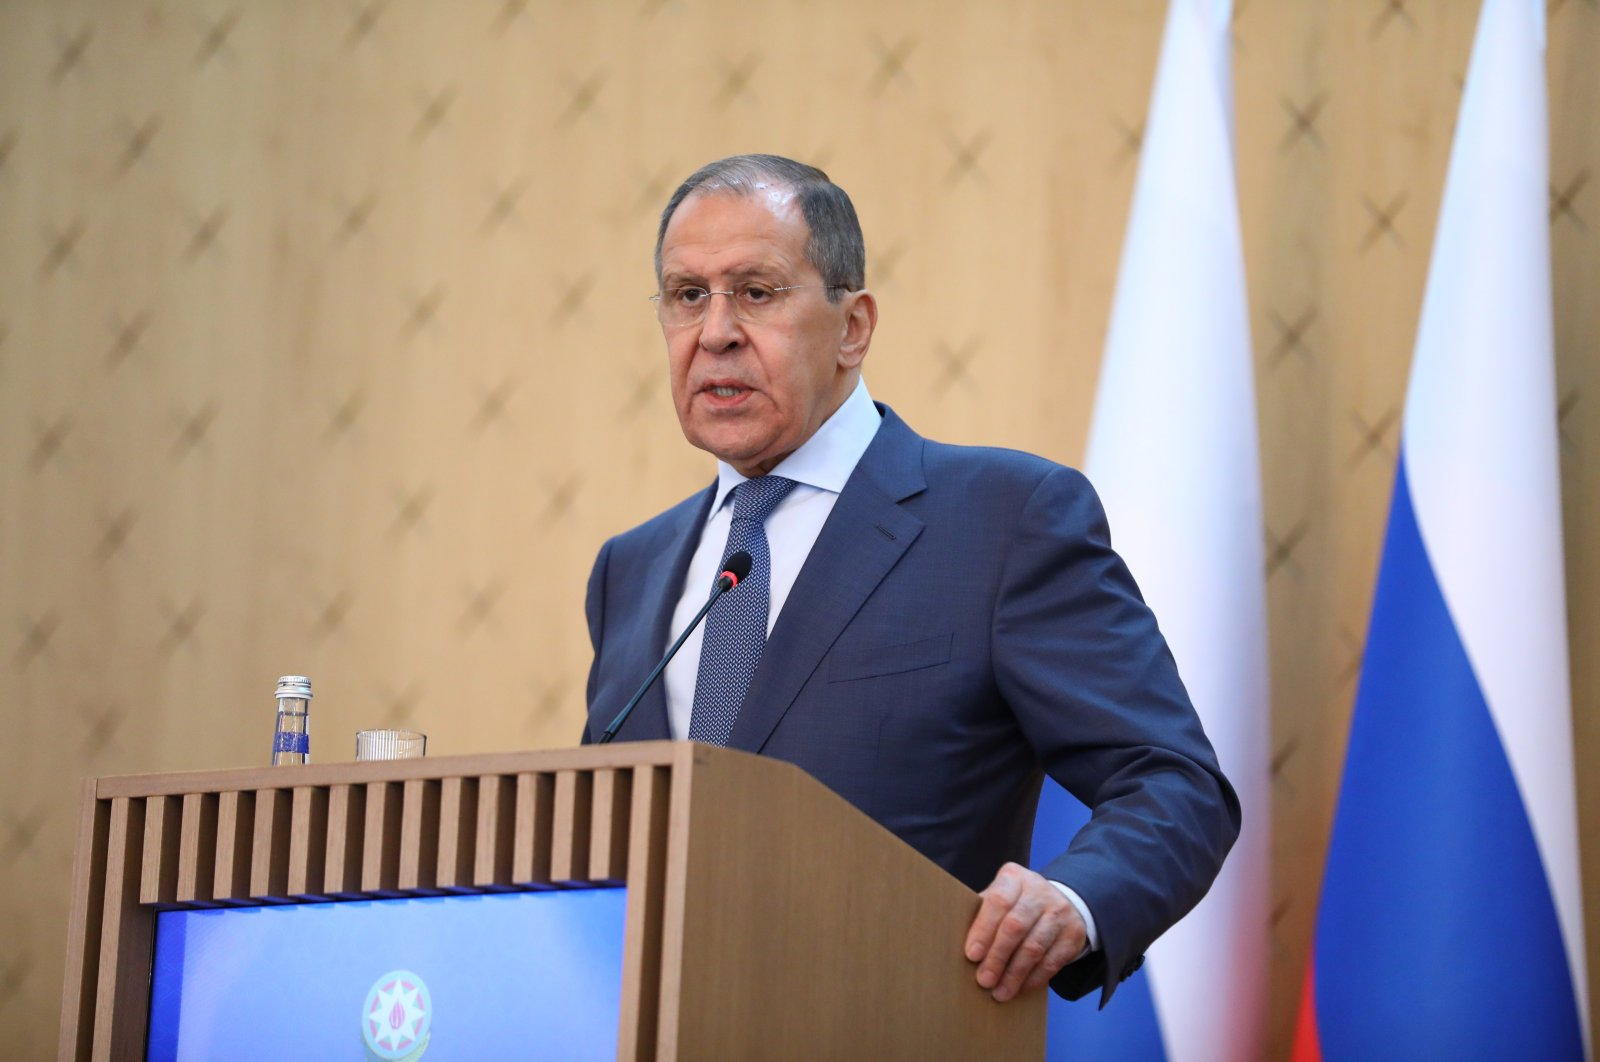 Russia to take further steps to support Nagorno-Karabakh cease-fire